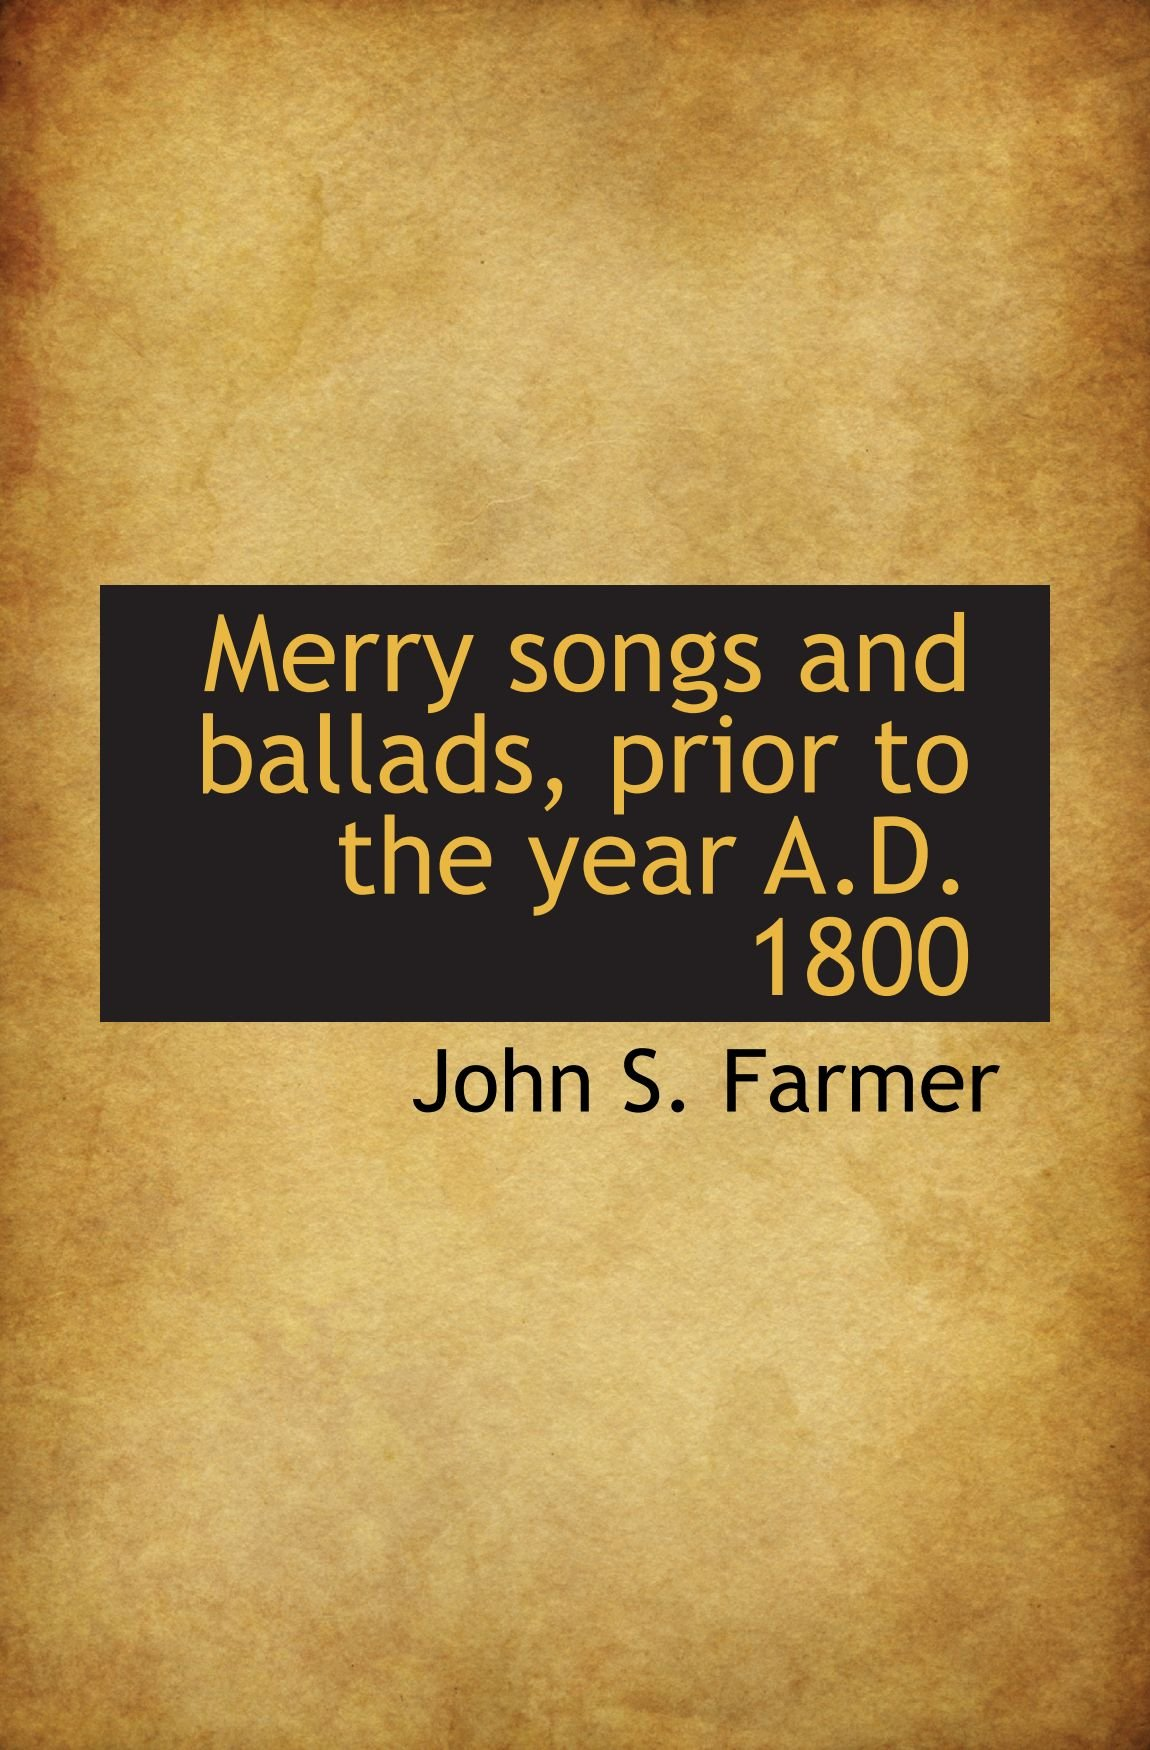 Merry songs and ballads, prior to the year A.D. 1800 pdf